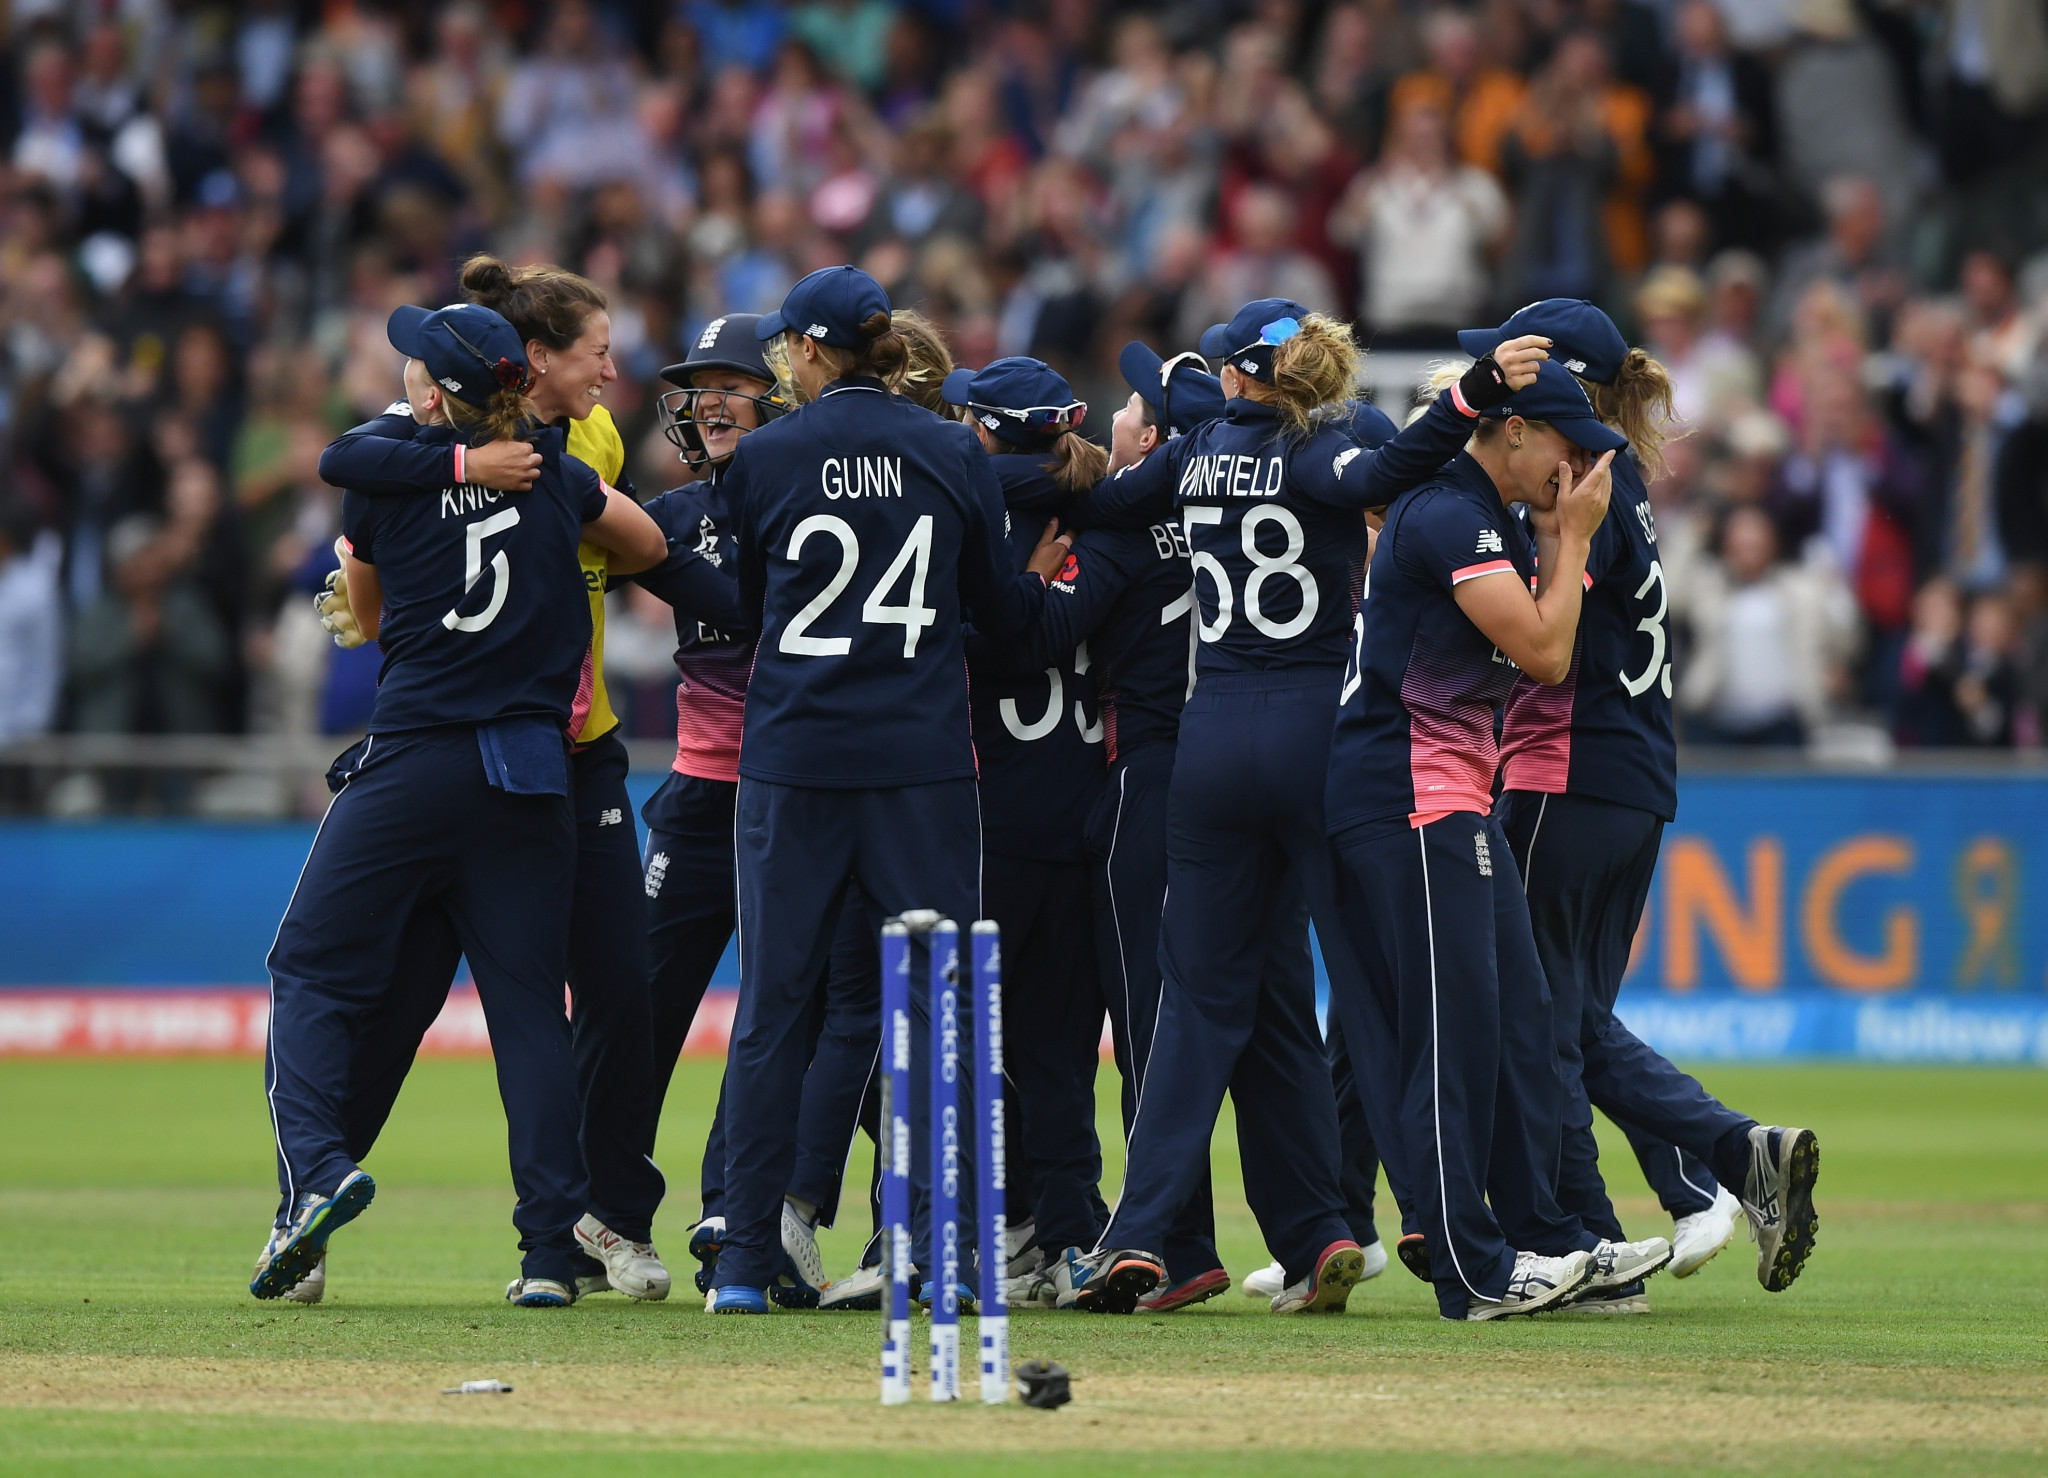 Kia will continue their sponsorship of the England women's team ©Getty Images